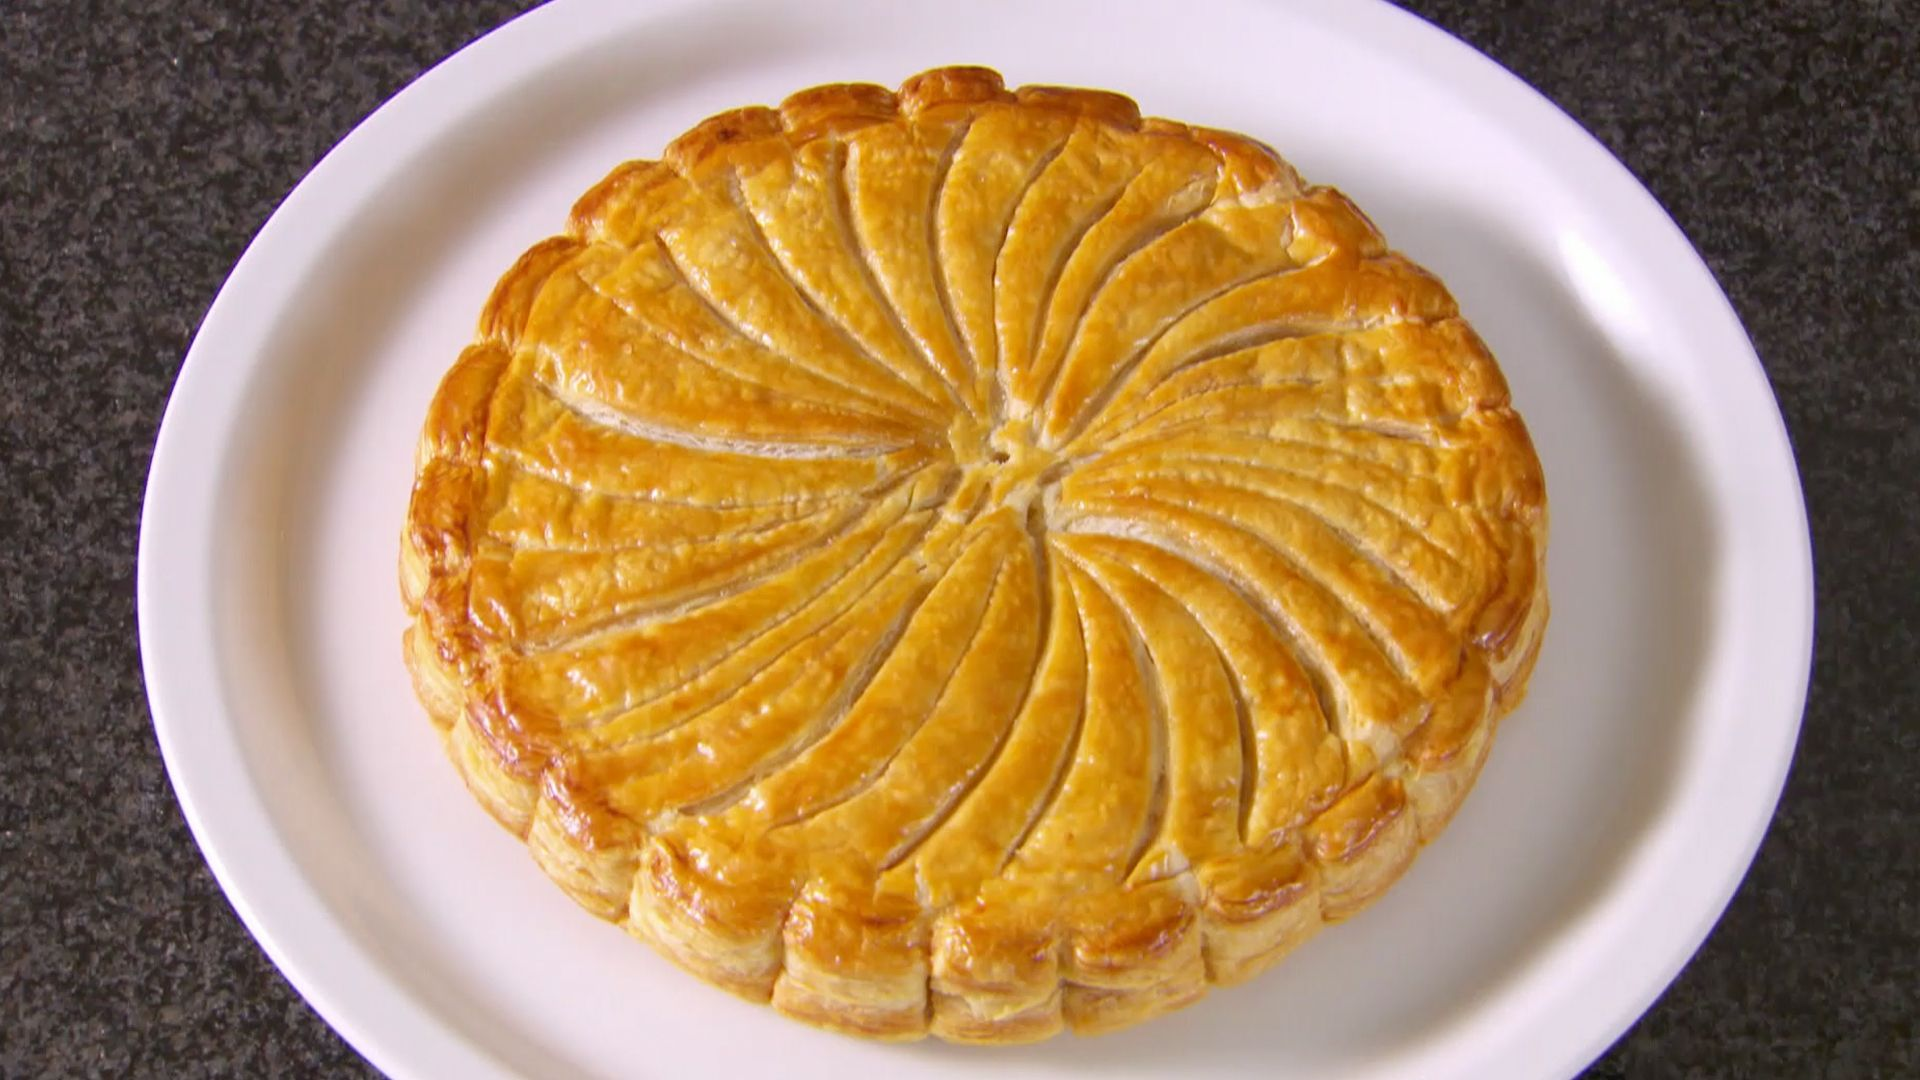 Mary S Galette Recipe Pbs Food British Baking Show Recipes British Bake Off Recipes Bake Off Recipes